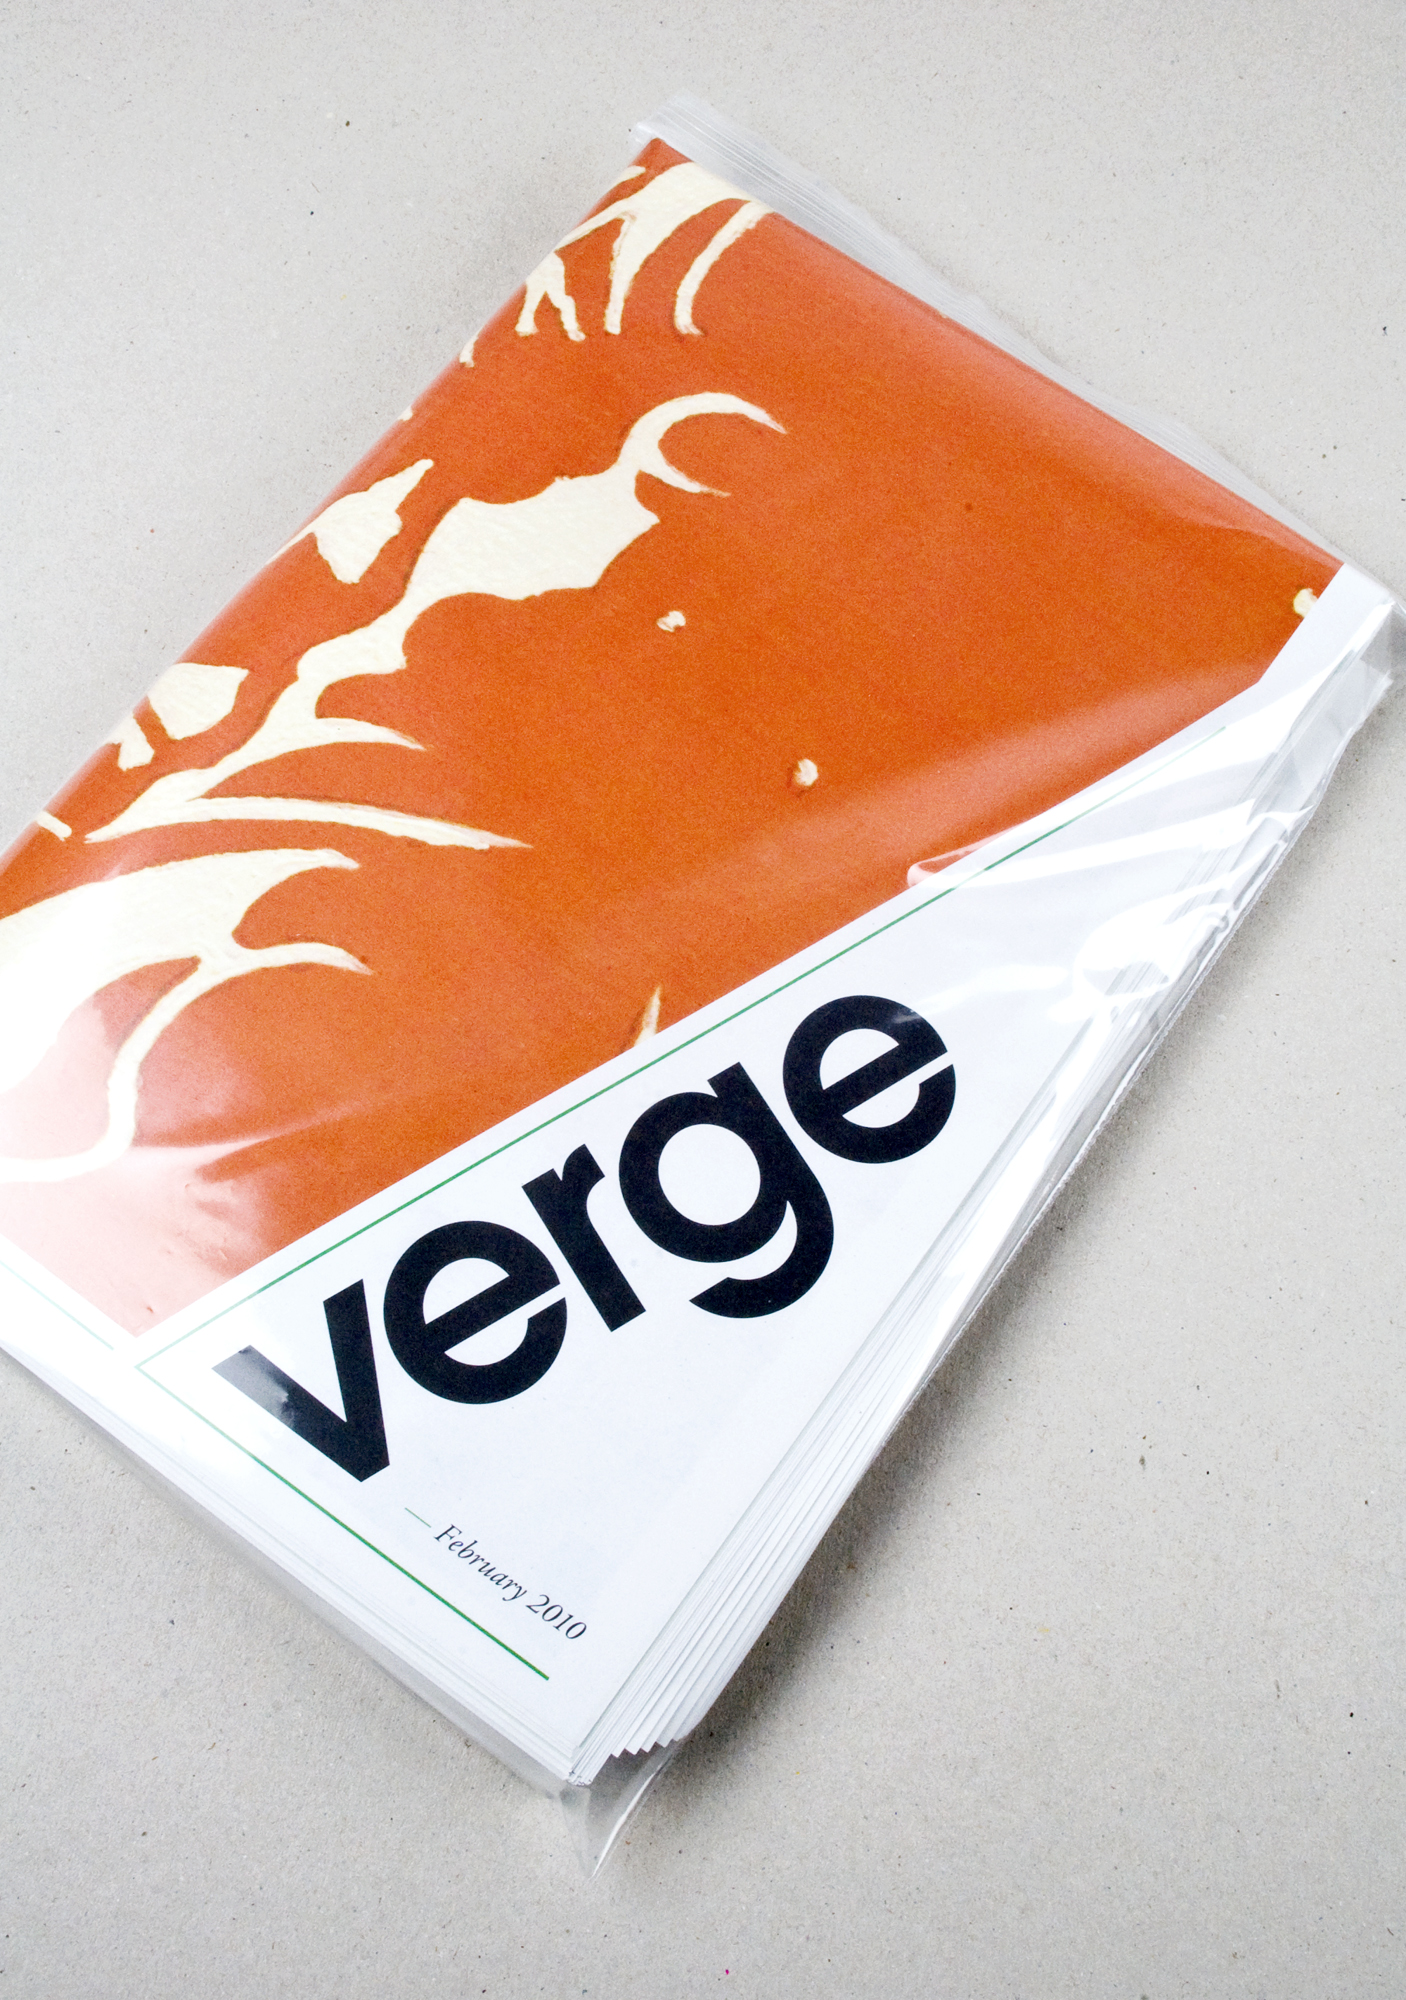 Cover image: Verge